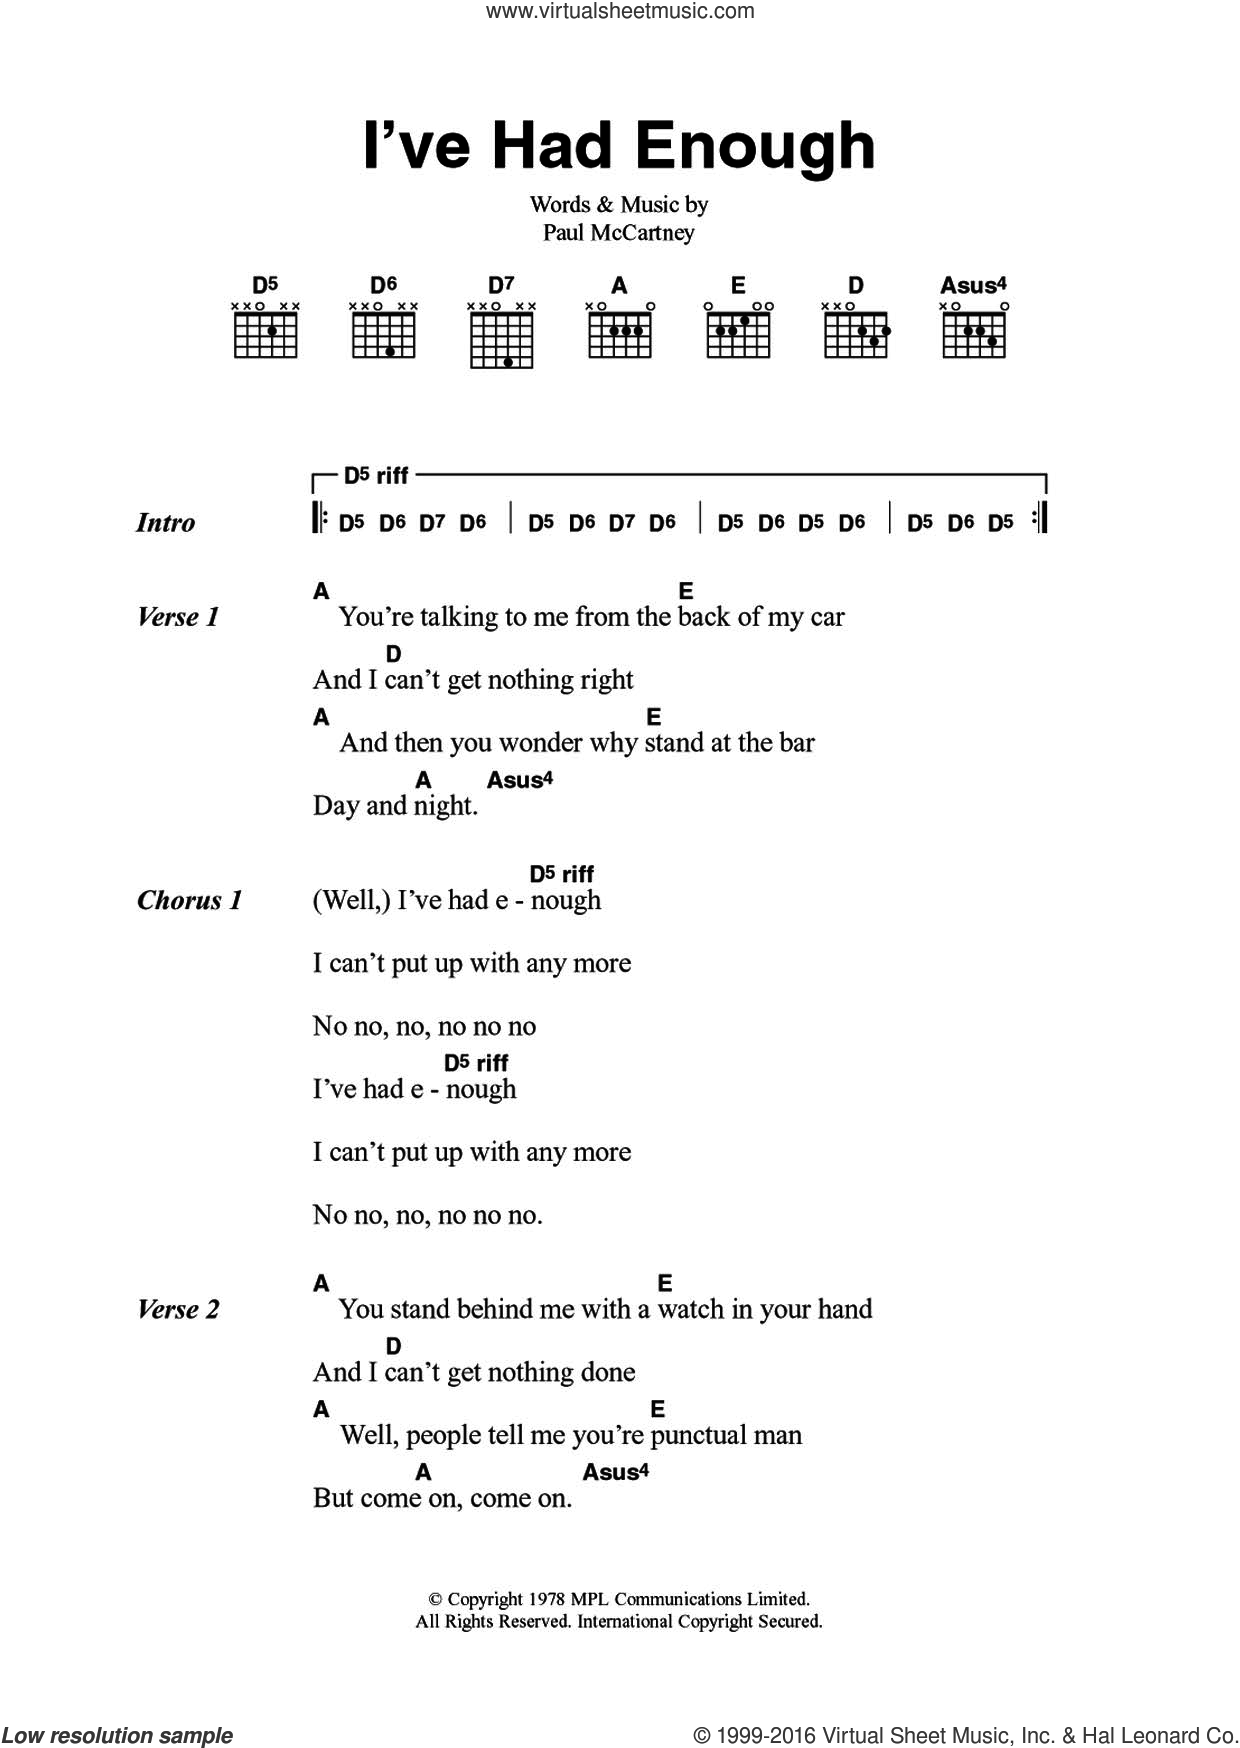 I've Had Enough sheet music for guitar (chords) by Wings and Paul McCartney, intermediate skill level